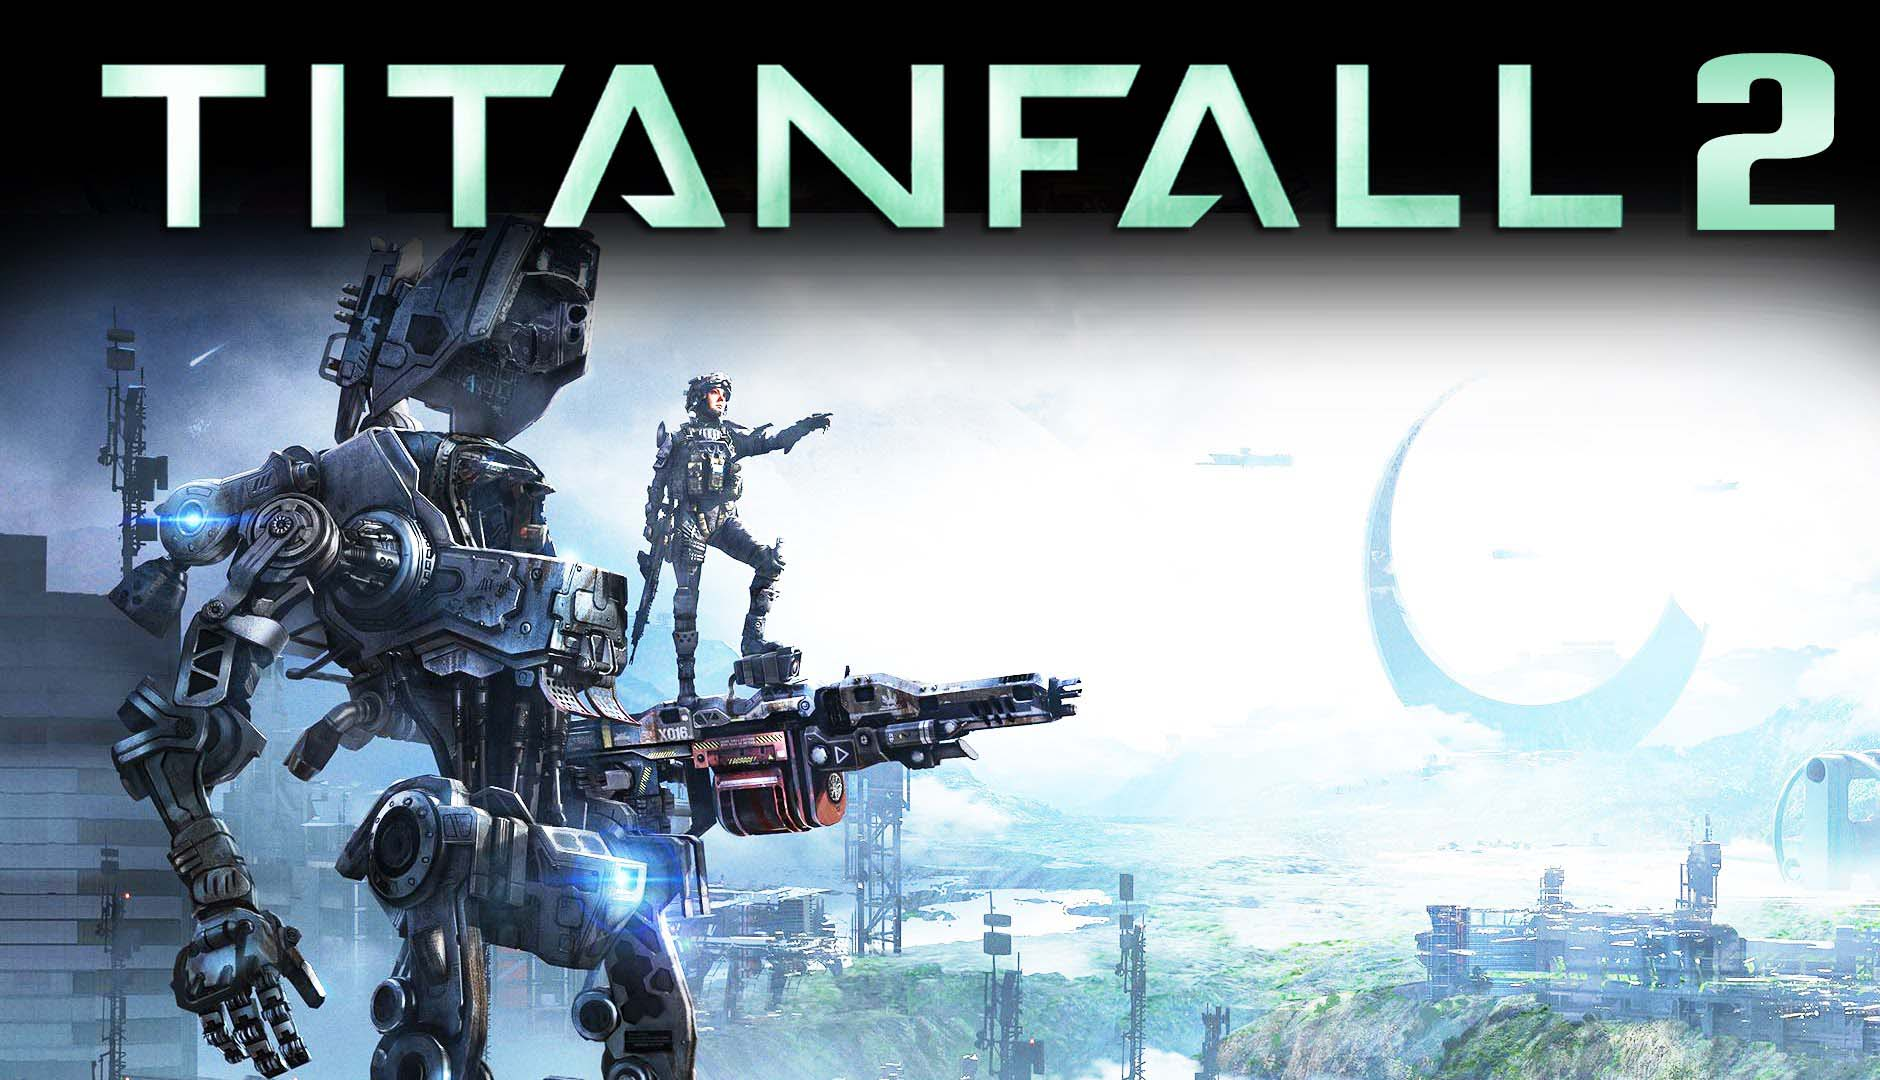 Titanfall 2 hd wallpapers full hd pictures - Titanfall 2 wallpaper hd ...